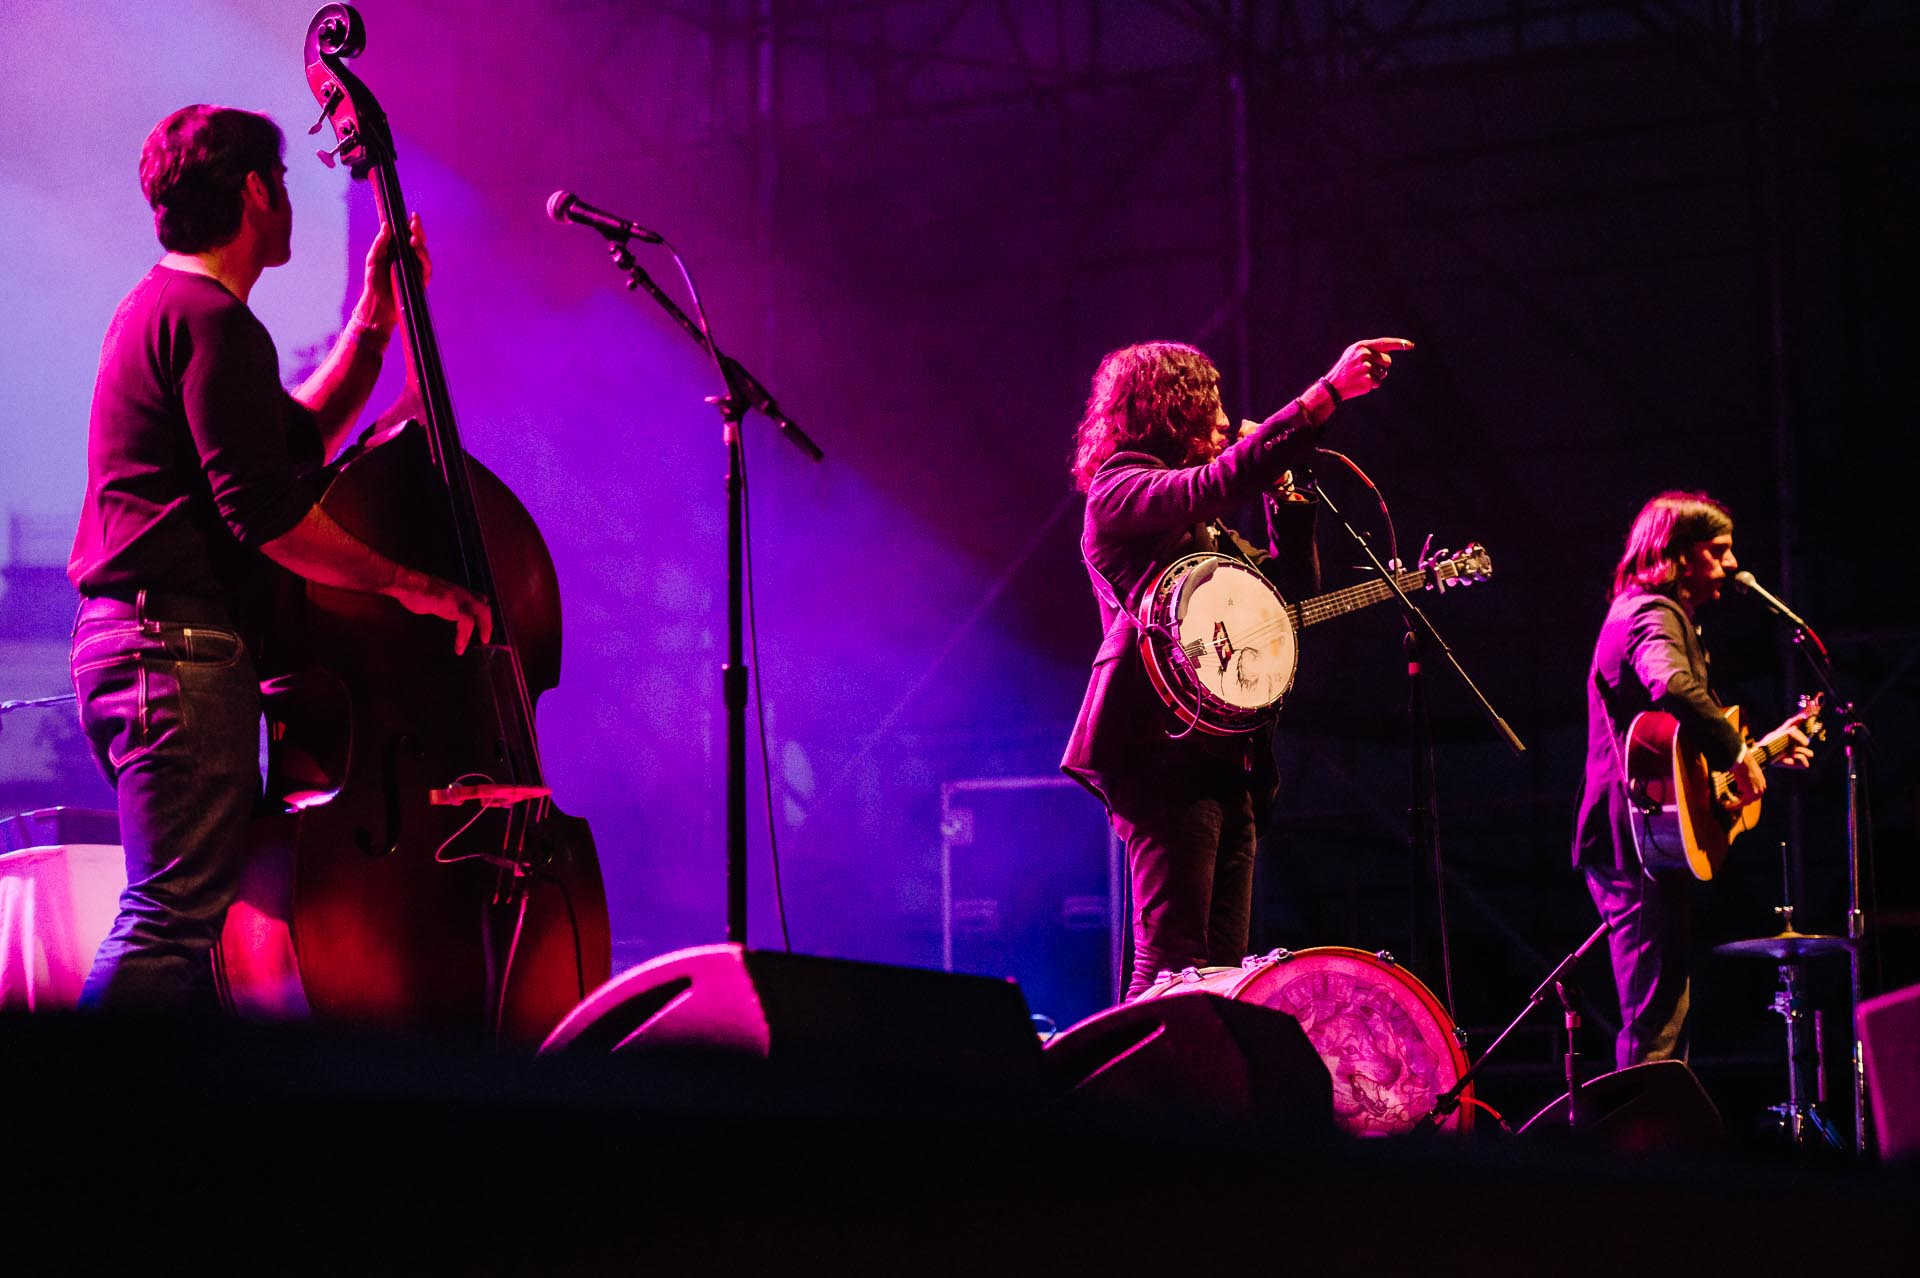 avett_brothers_the_lawn_white_river_state_park_indianapolis_093012-11